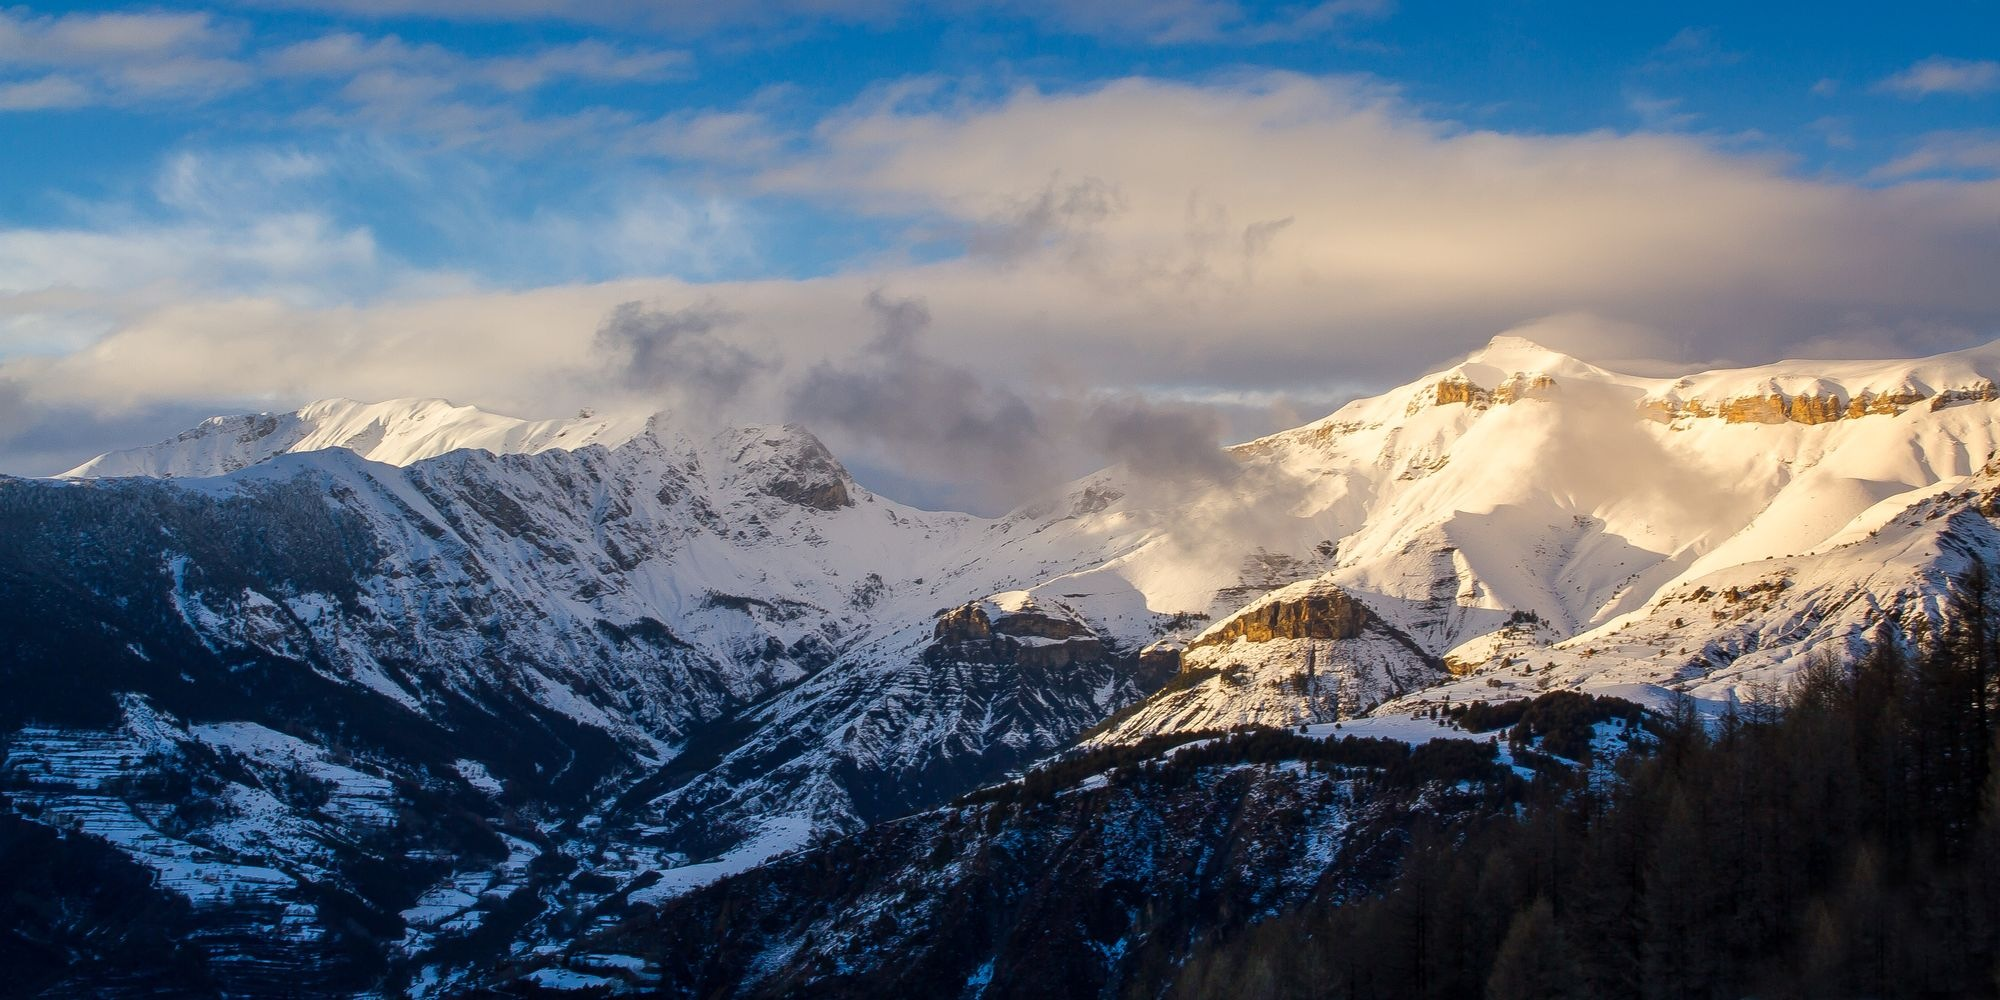 Wind On The Peaks (Q18a) by Darblanc